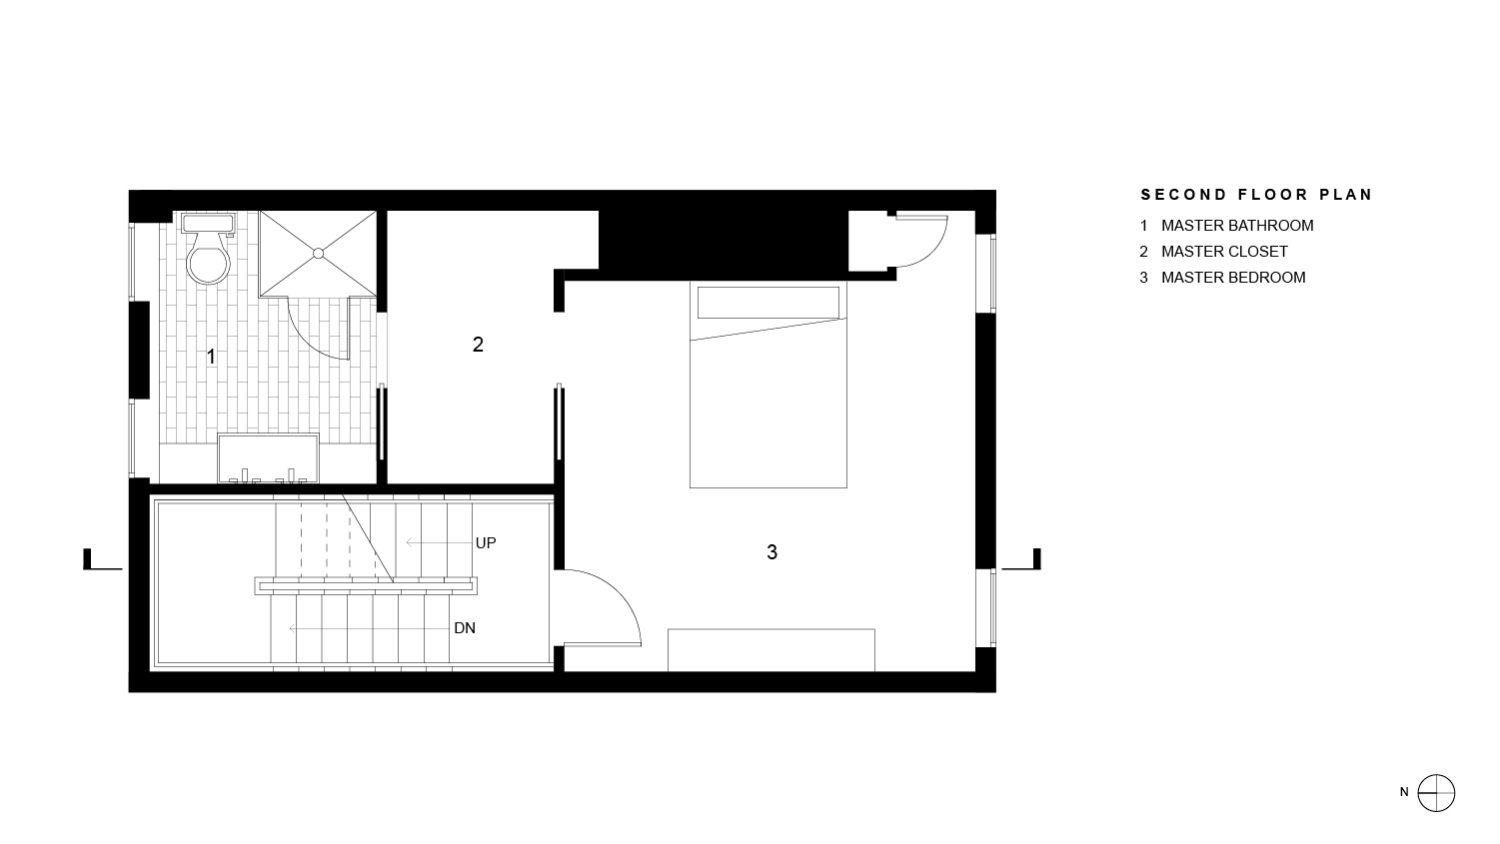 Wright Residence Second Floor Plan